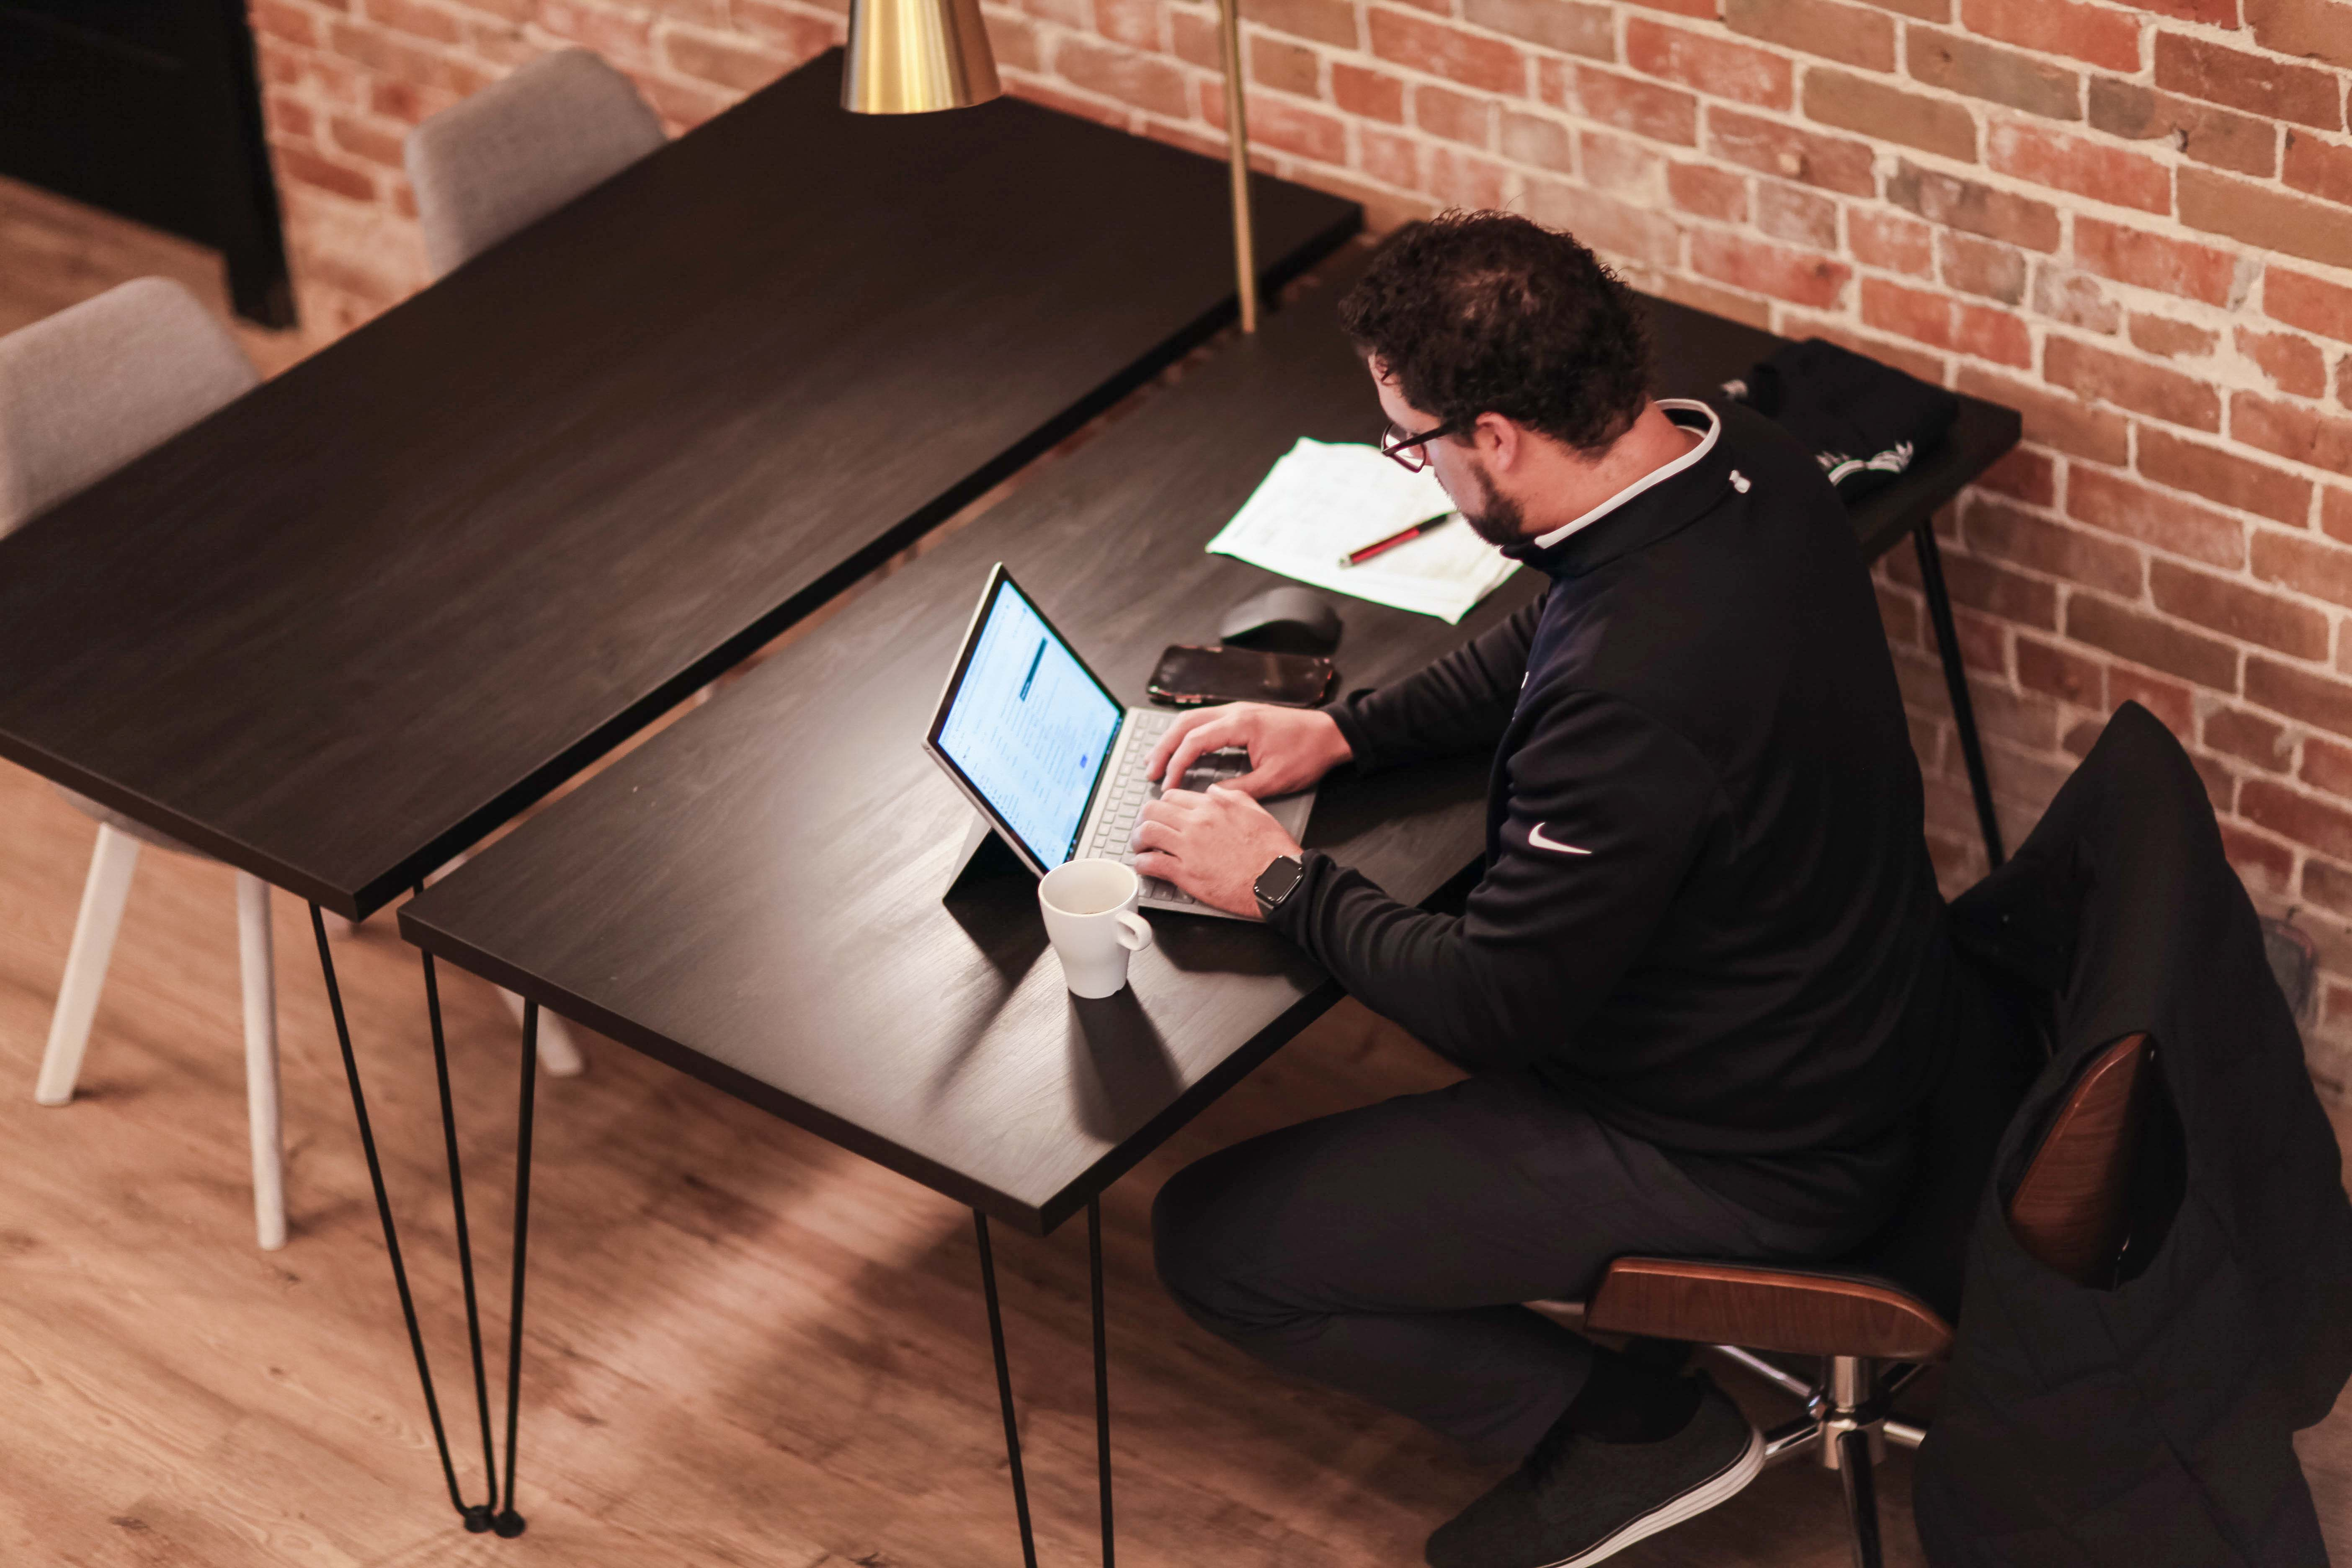 Person sitting at a desk working on a laptop